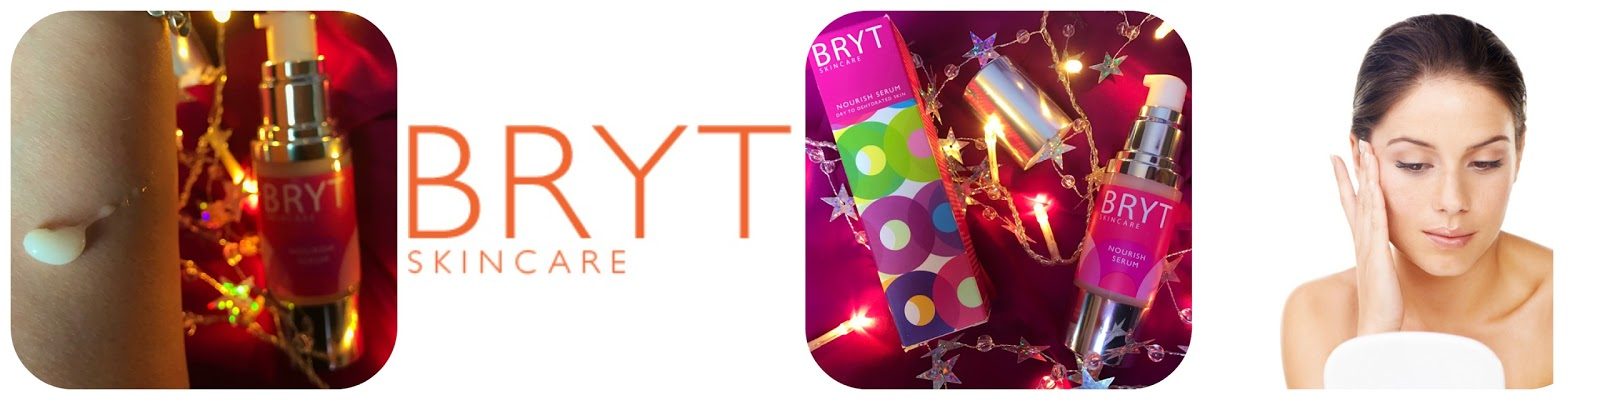 Bryt Skincare Nourish Serum Review